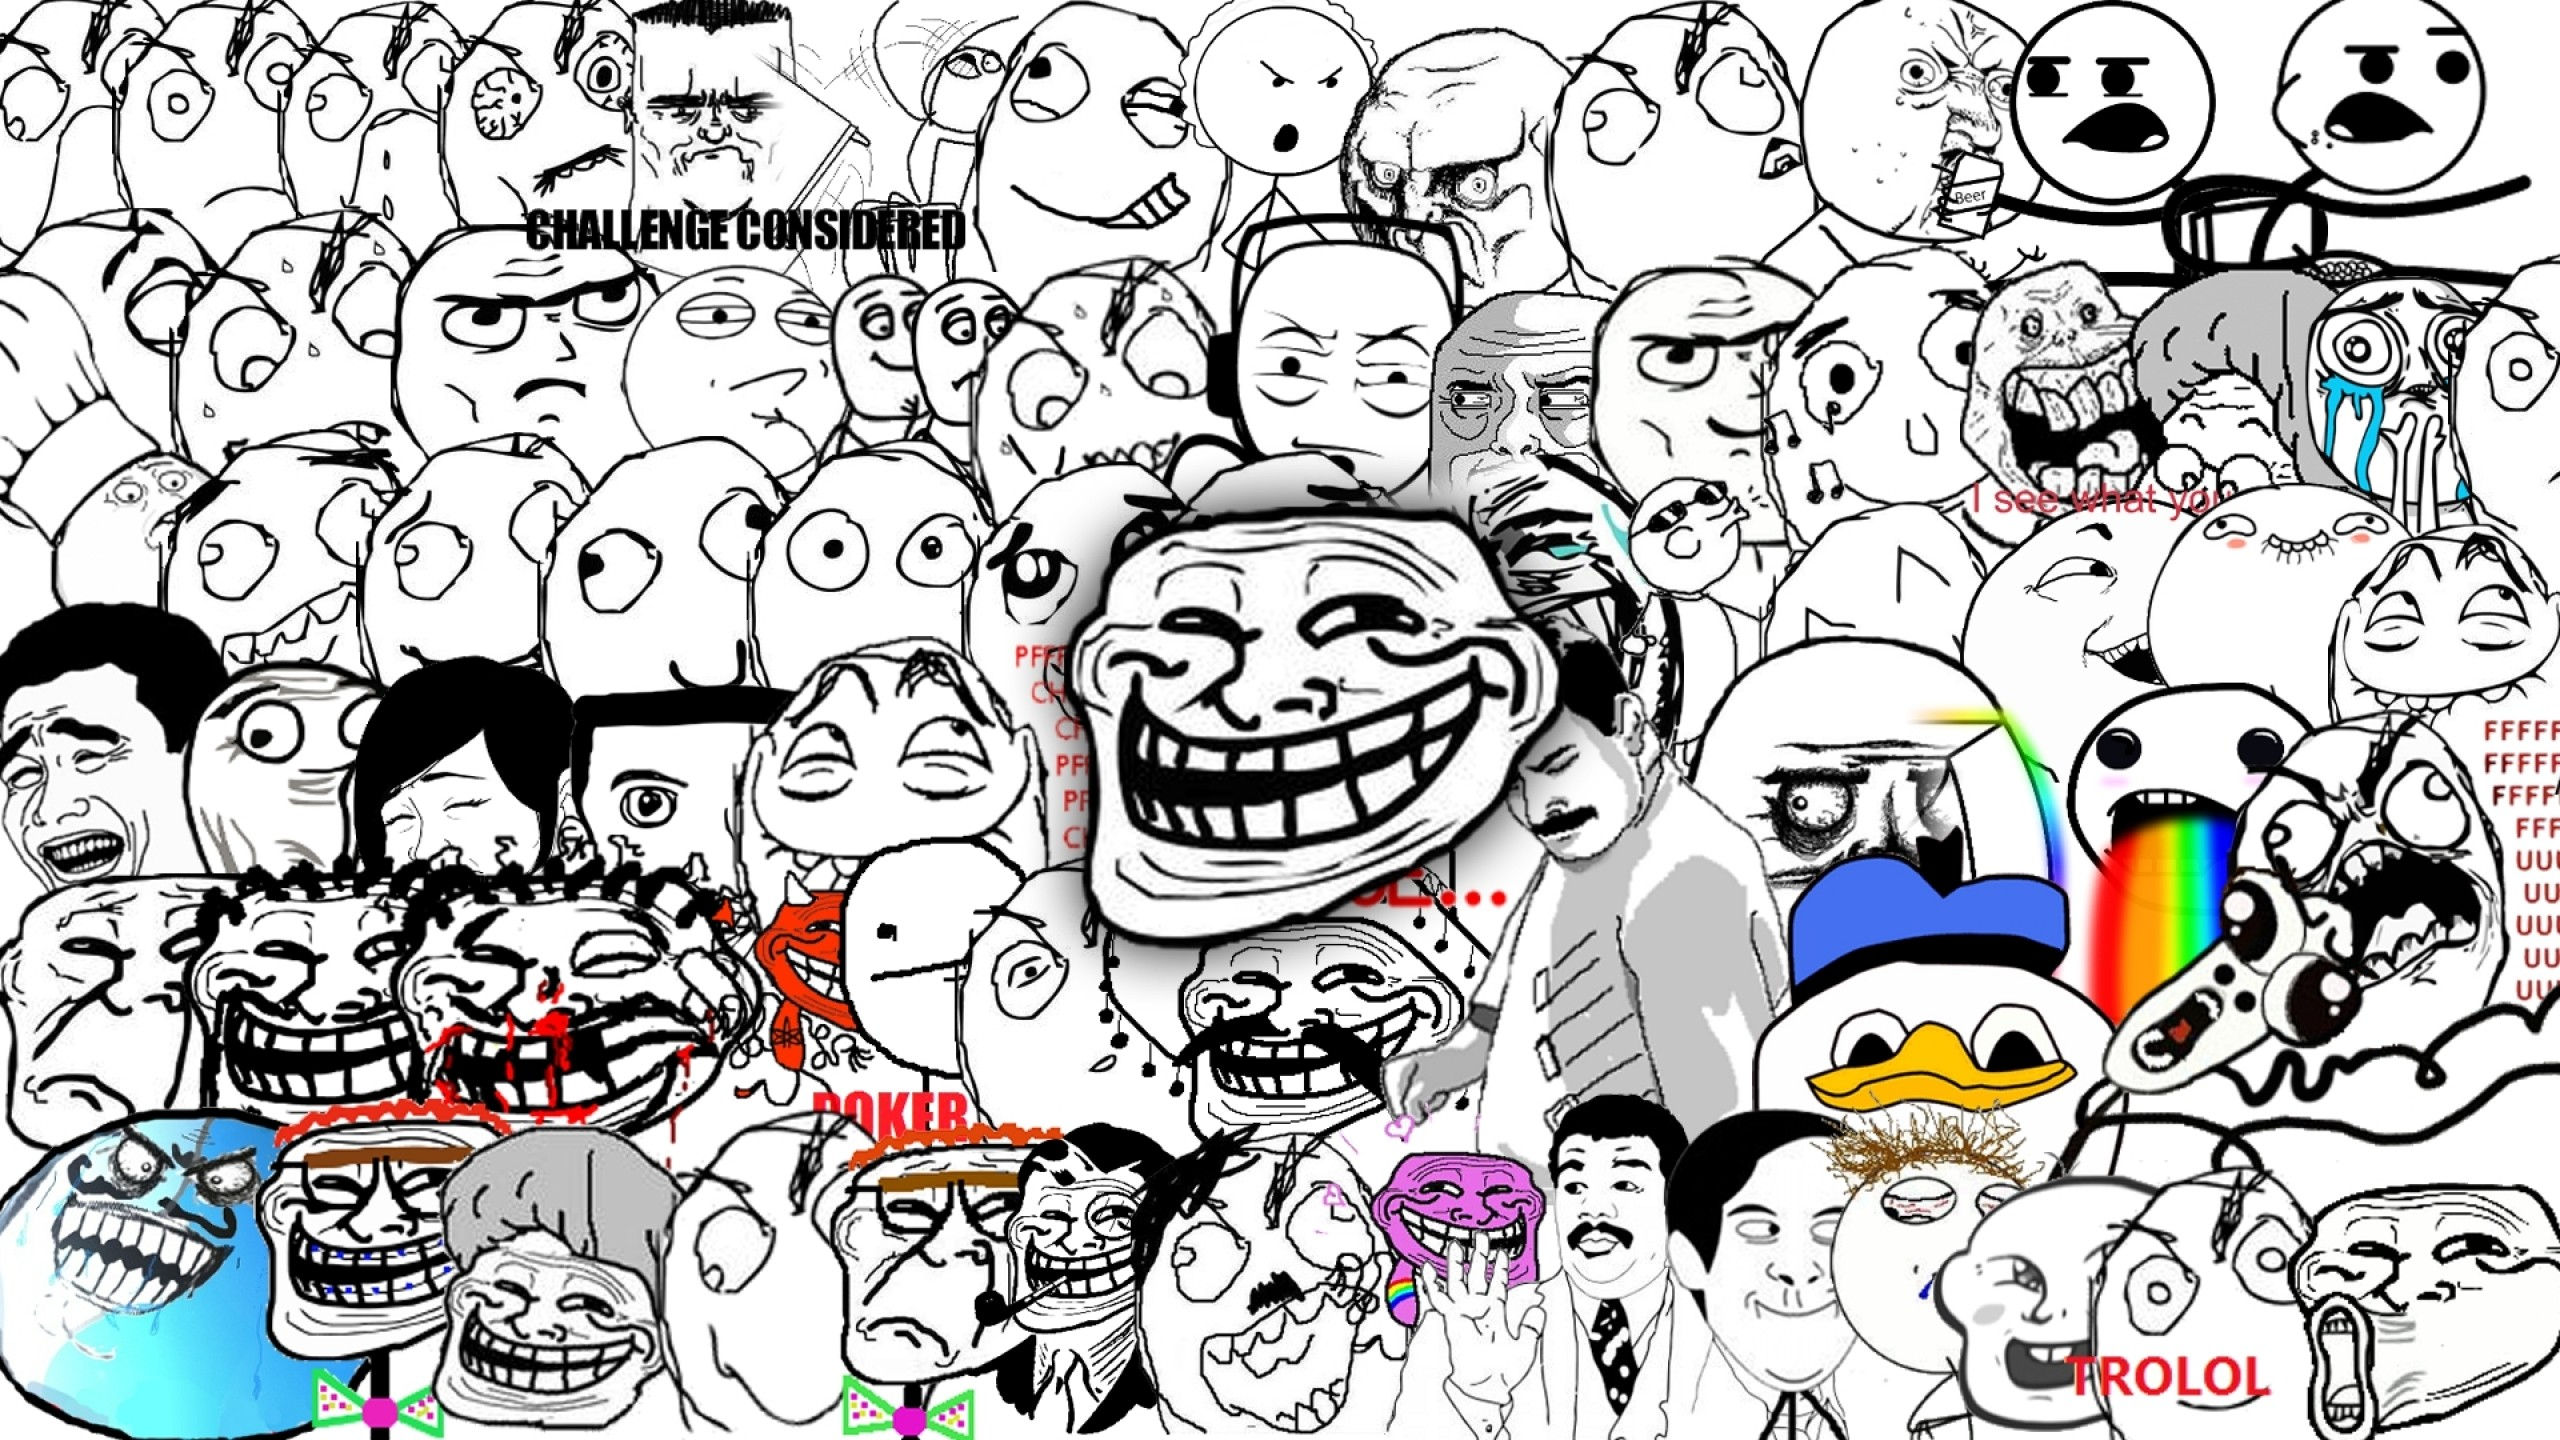 Troll face background 68 images 2048x2048 2048x2048 wallpaper trollface troll face comic humour smile teeth voltagebd Gallery